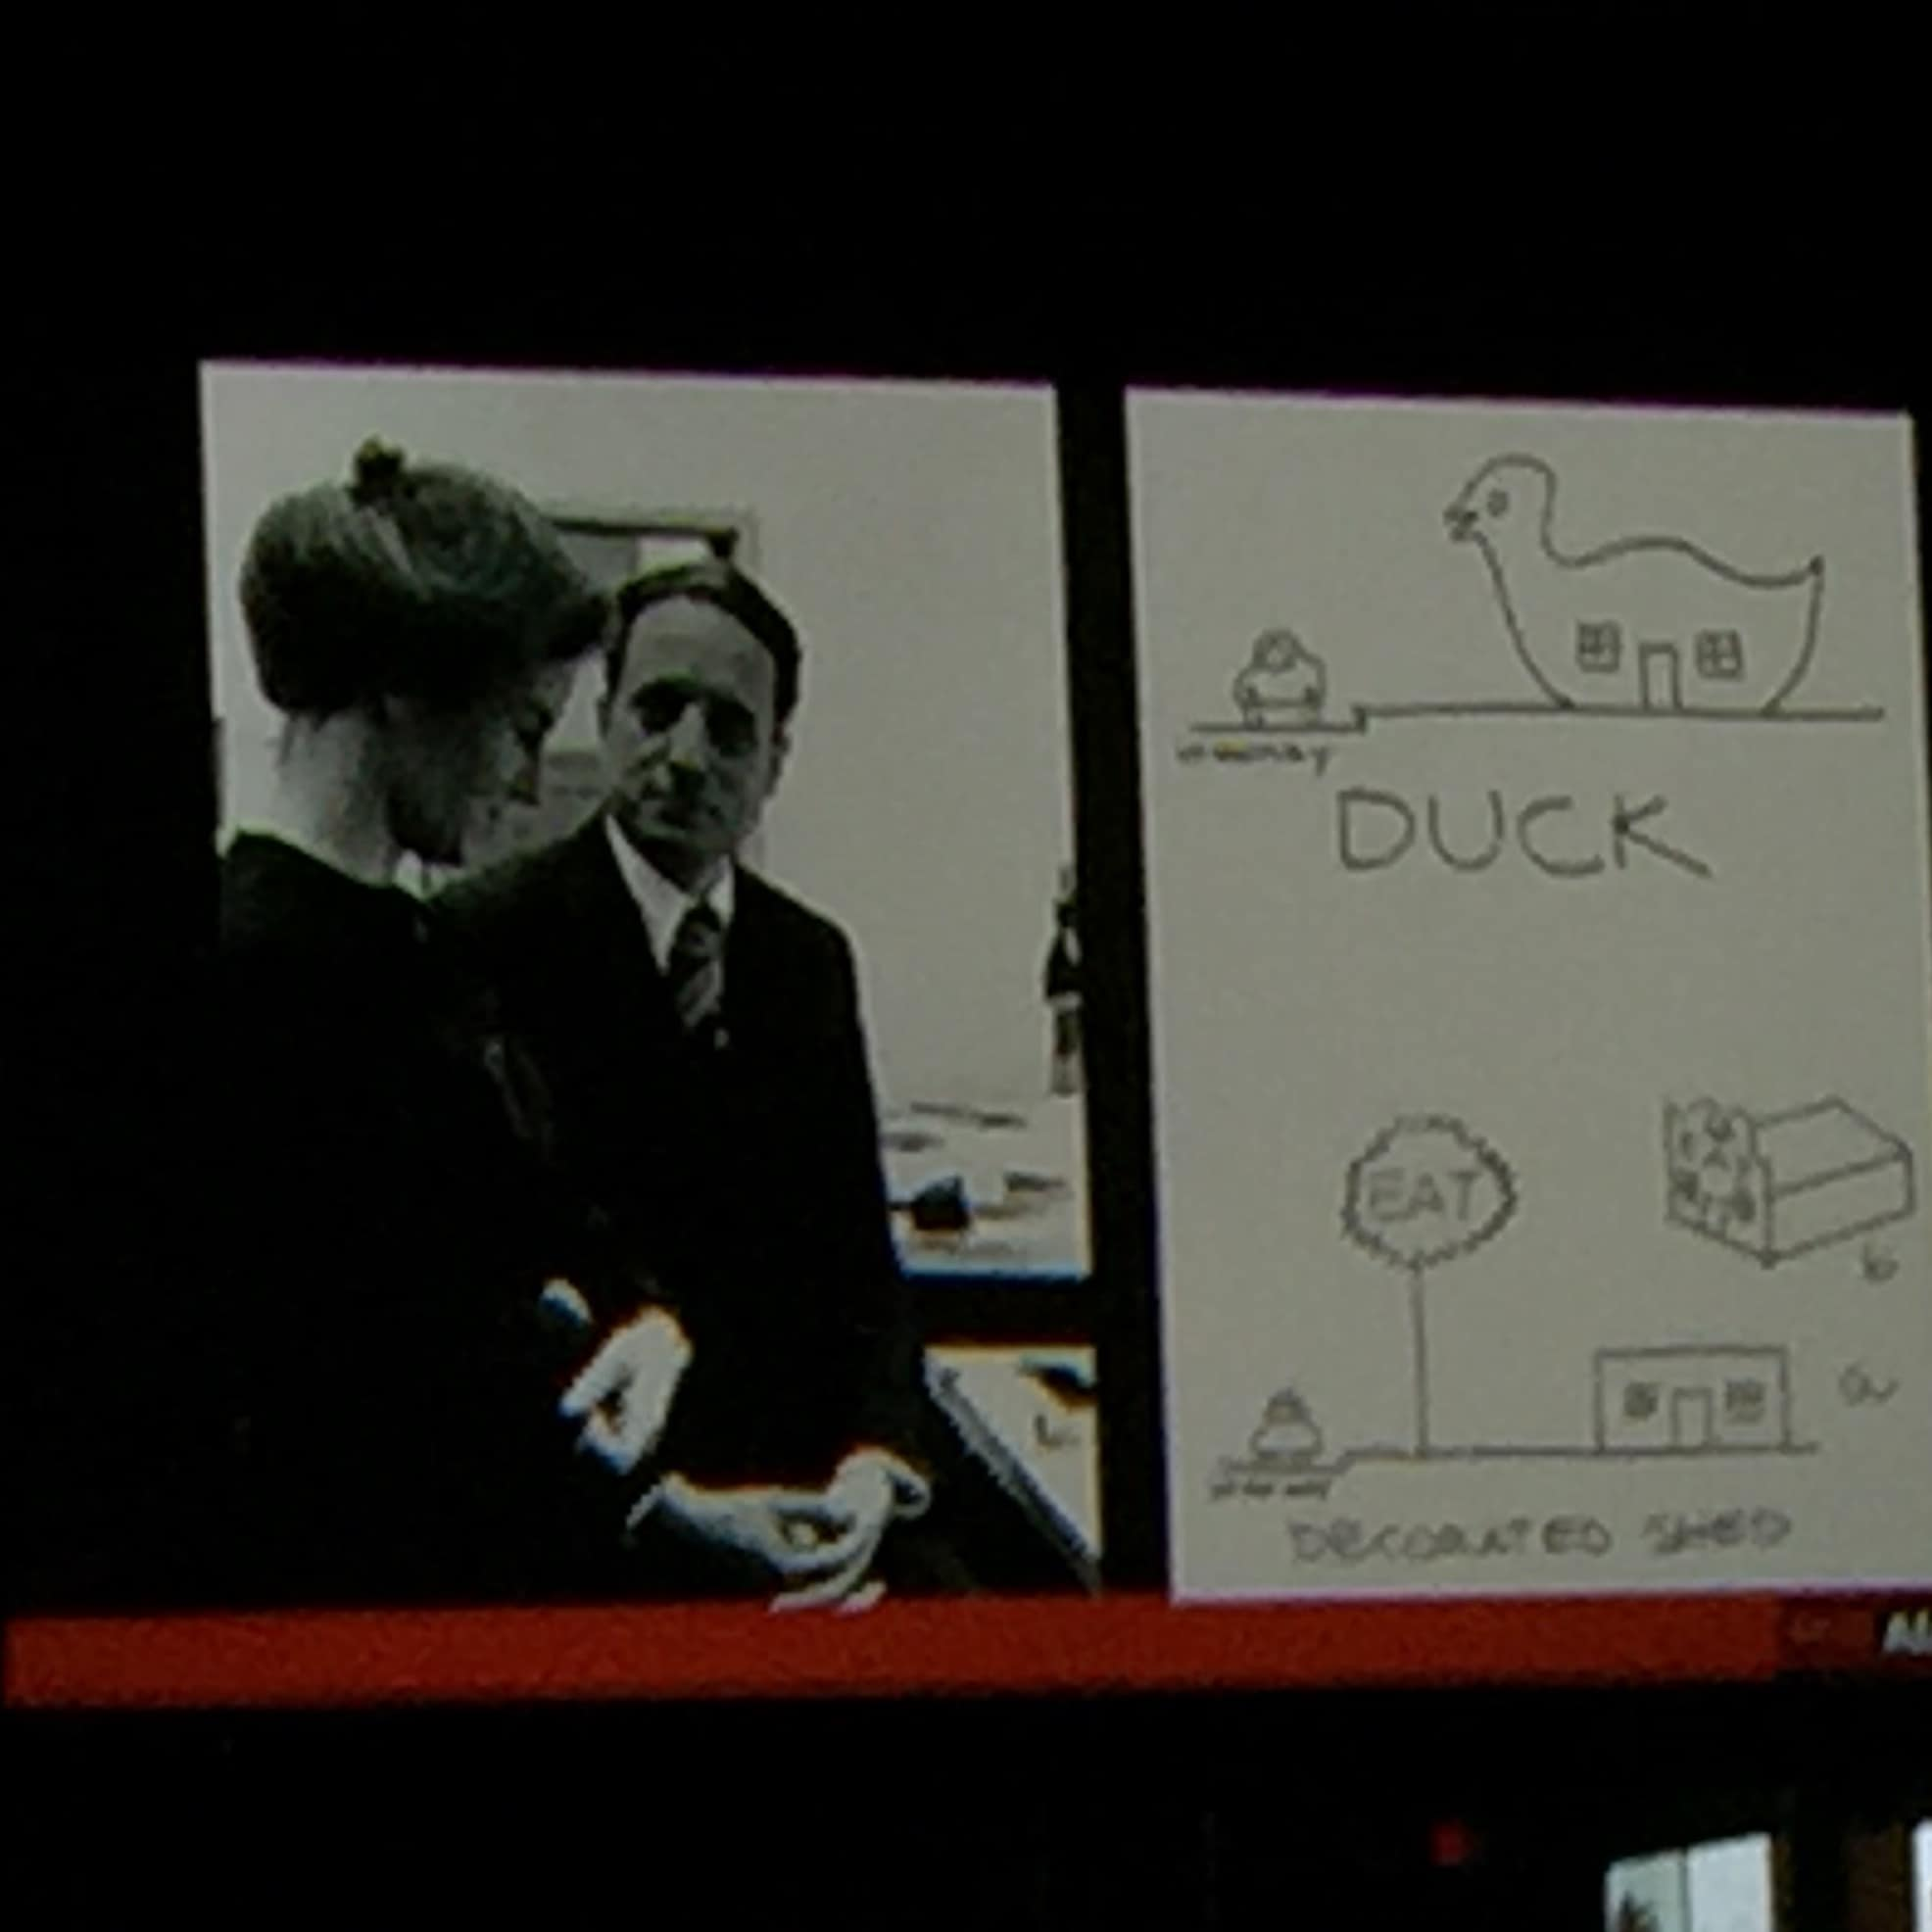 Yes!!!! Shout out to the Long Island Duck!!!! #aiacon16 #longislandduck